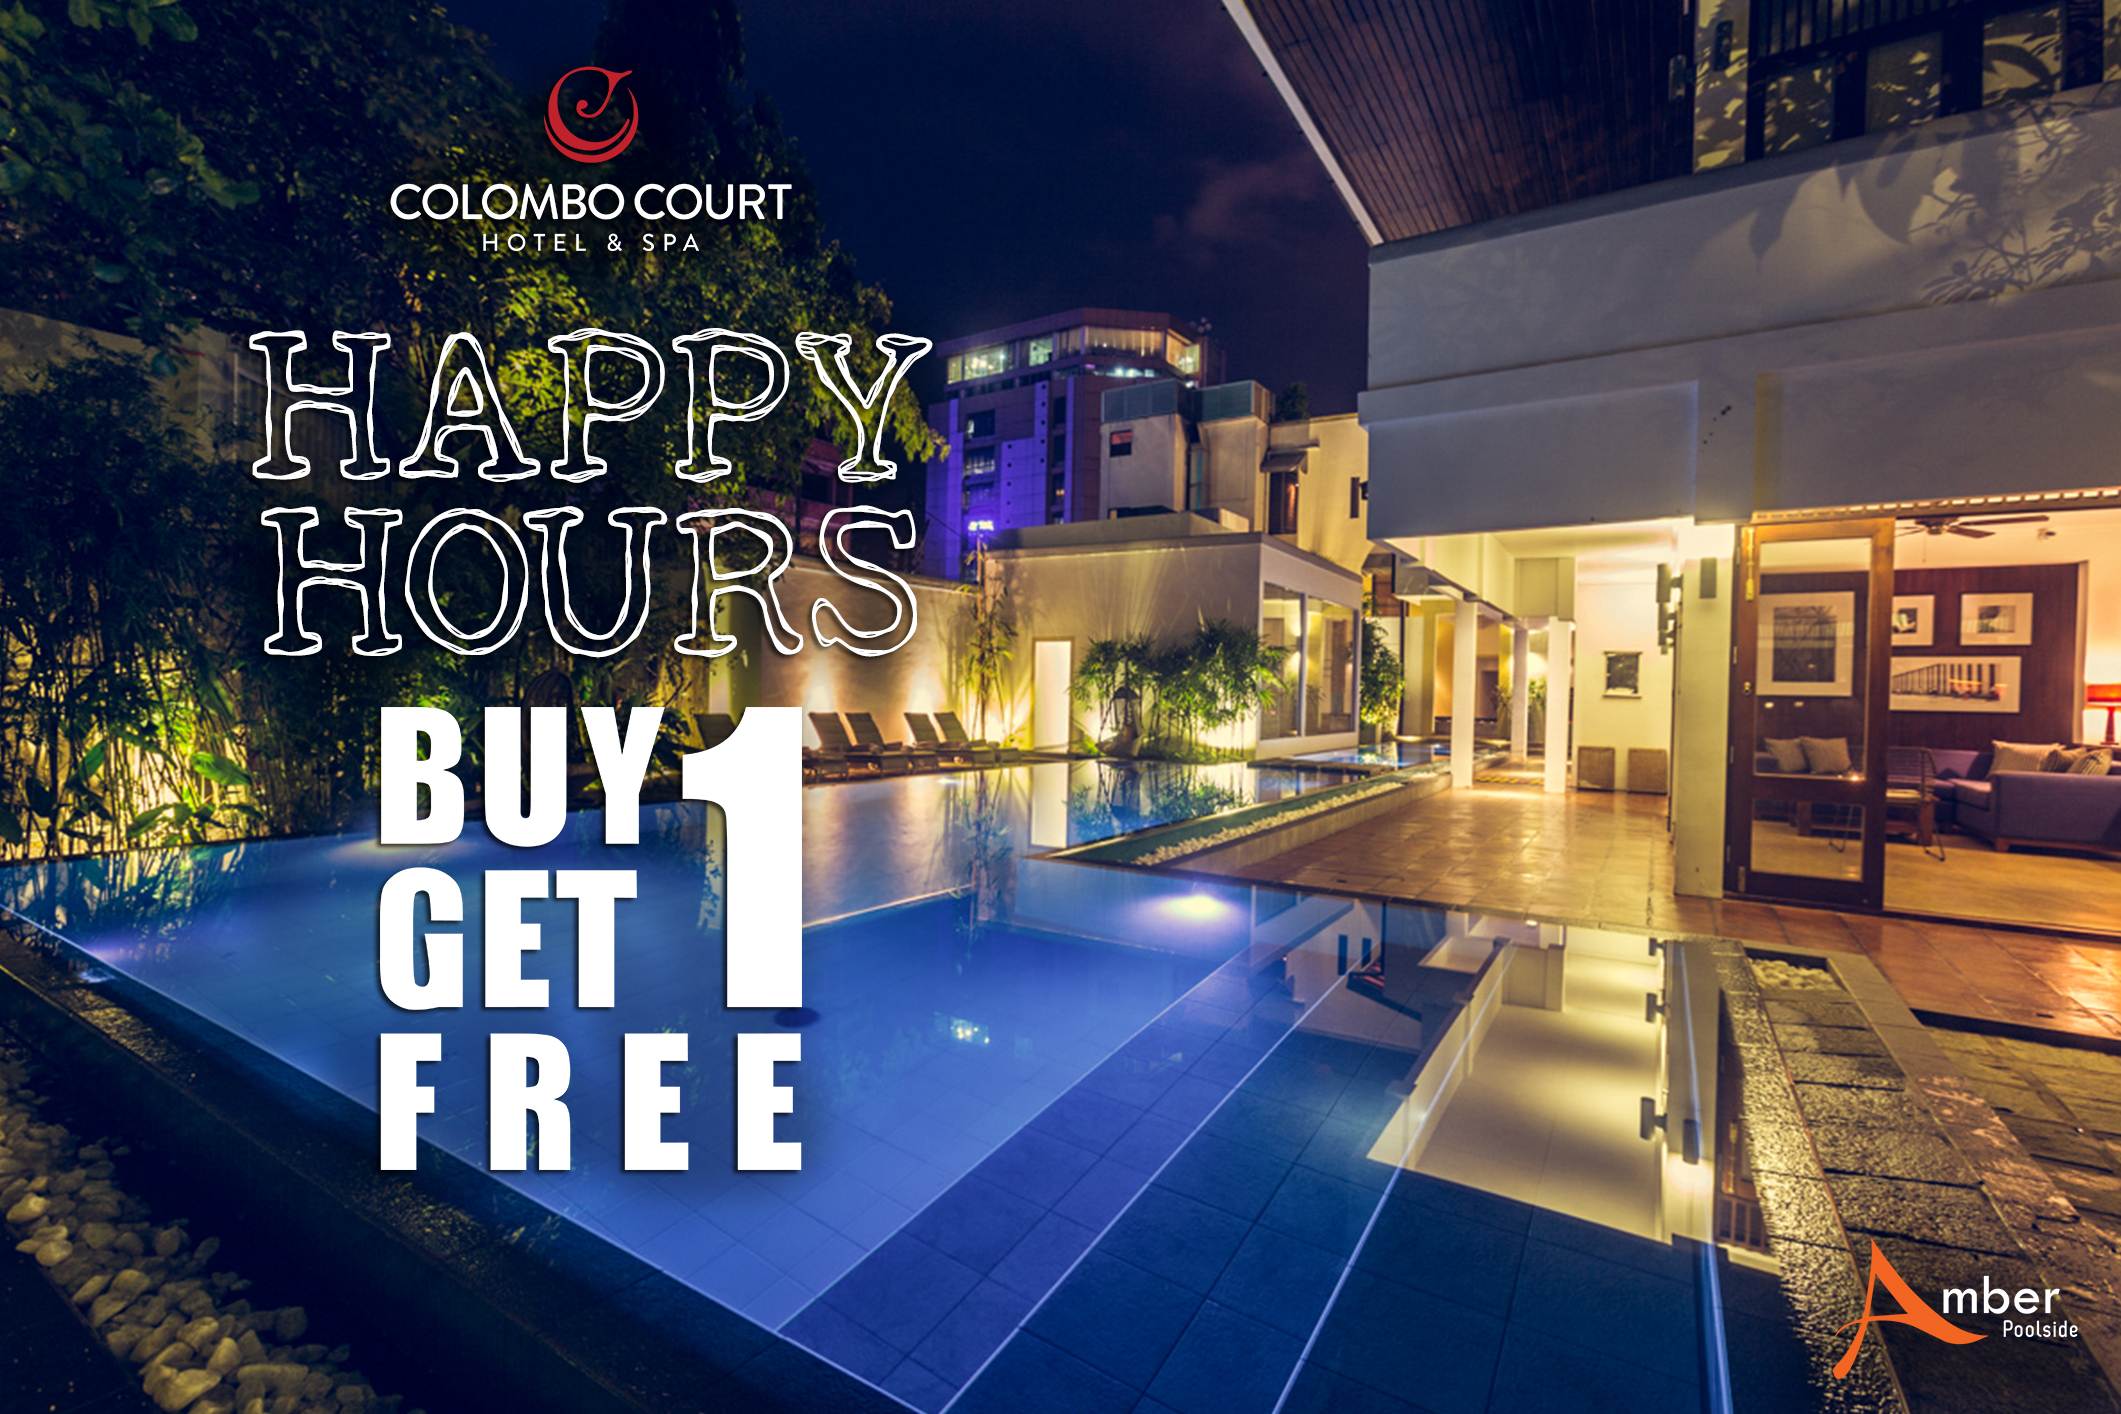 Colombo Court Hotel & Spa Announce Buy 1 Get 1 Free